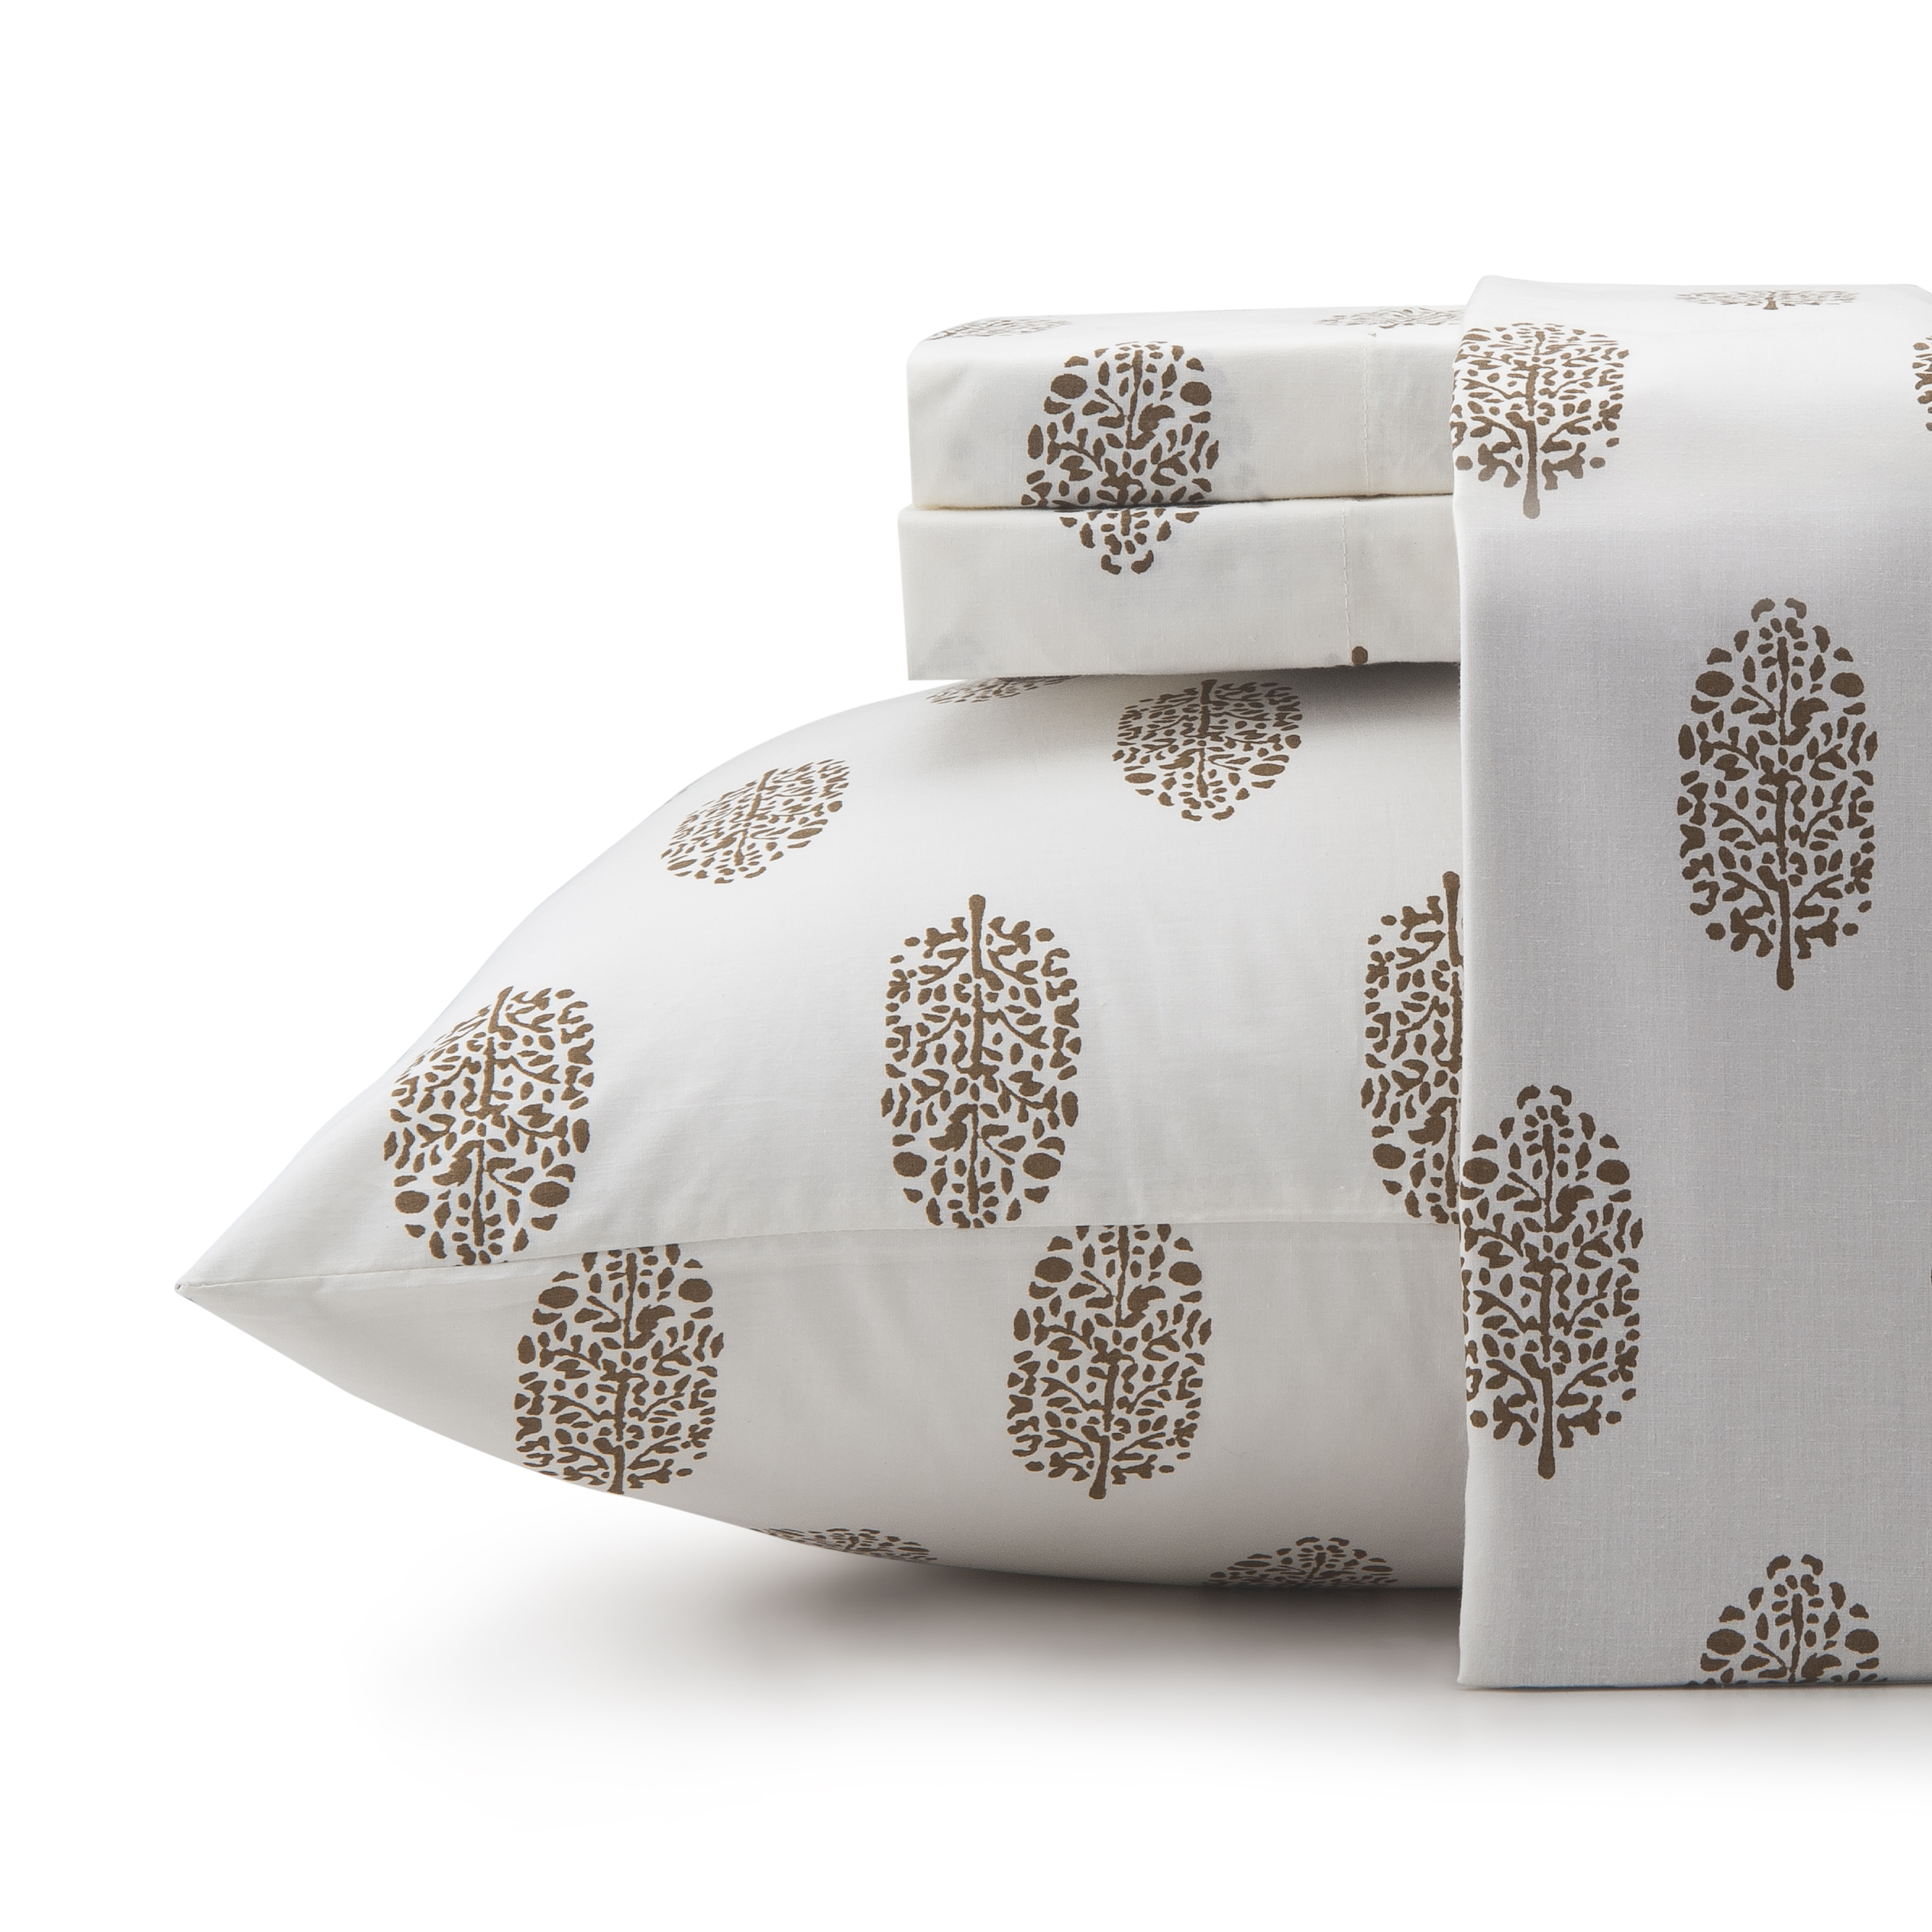 Vani 200 Thread Count Cotton Sheets, 4 Piece Cotton Full Bed Sheets Set,